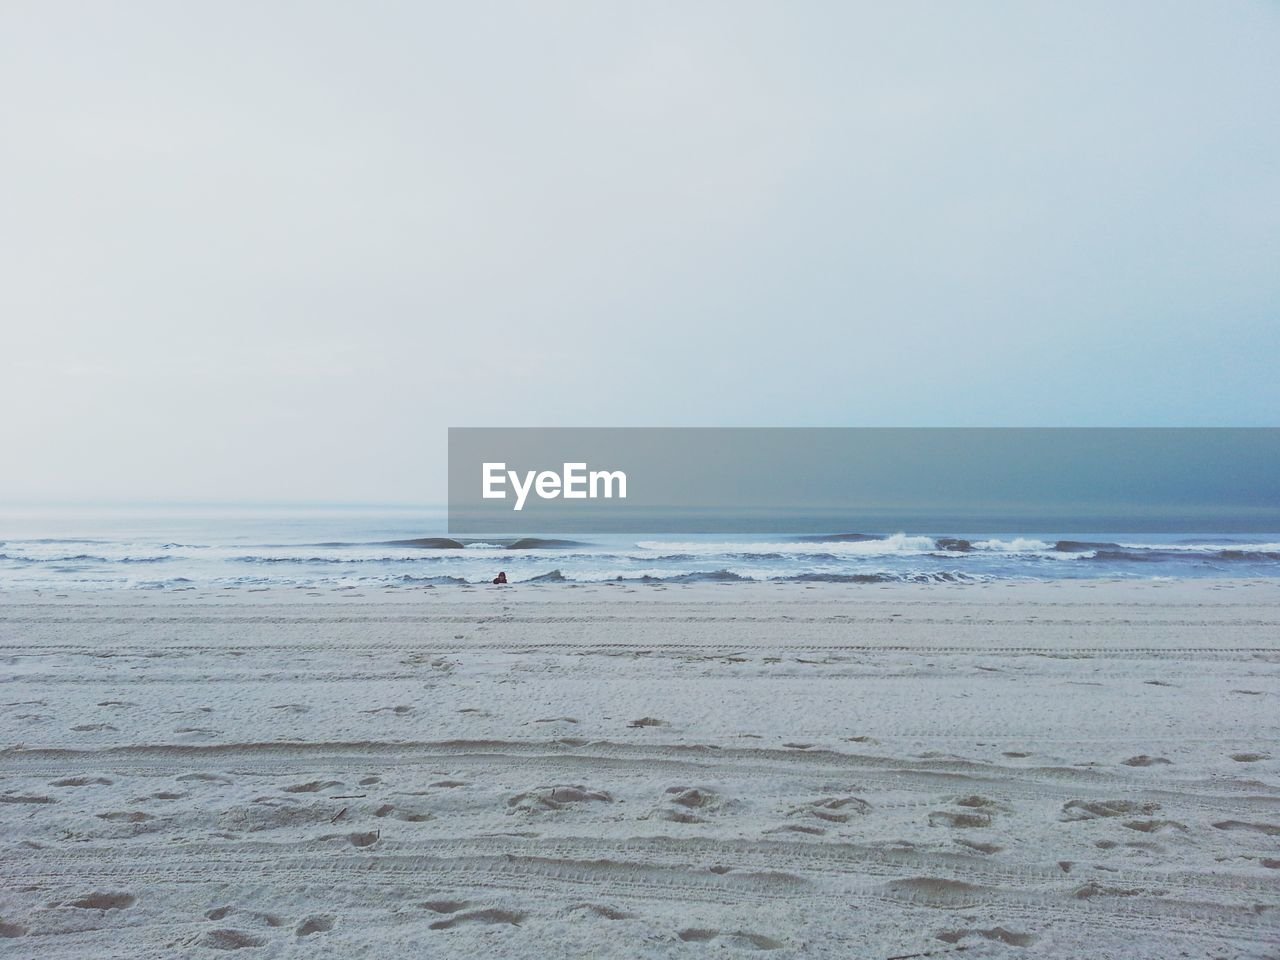 Scenic view of calm beach and crashing waves against clear sky